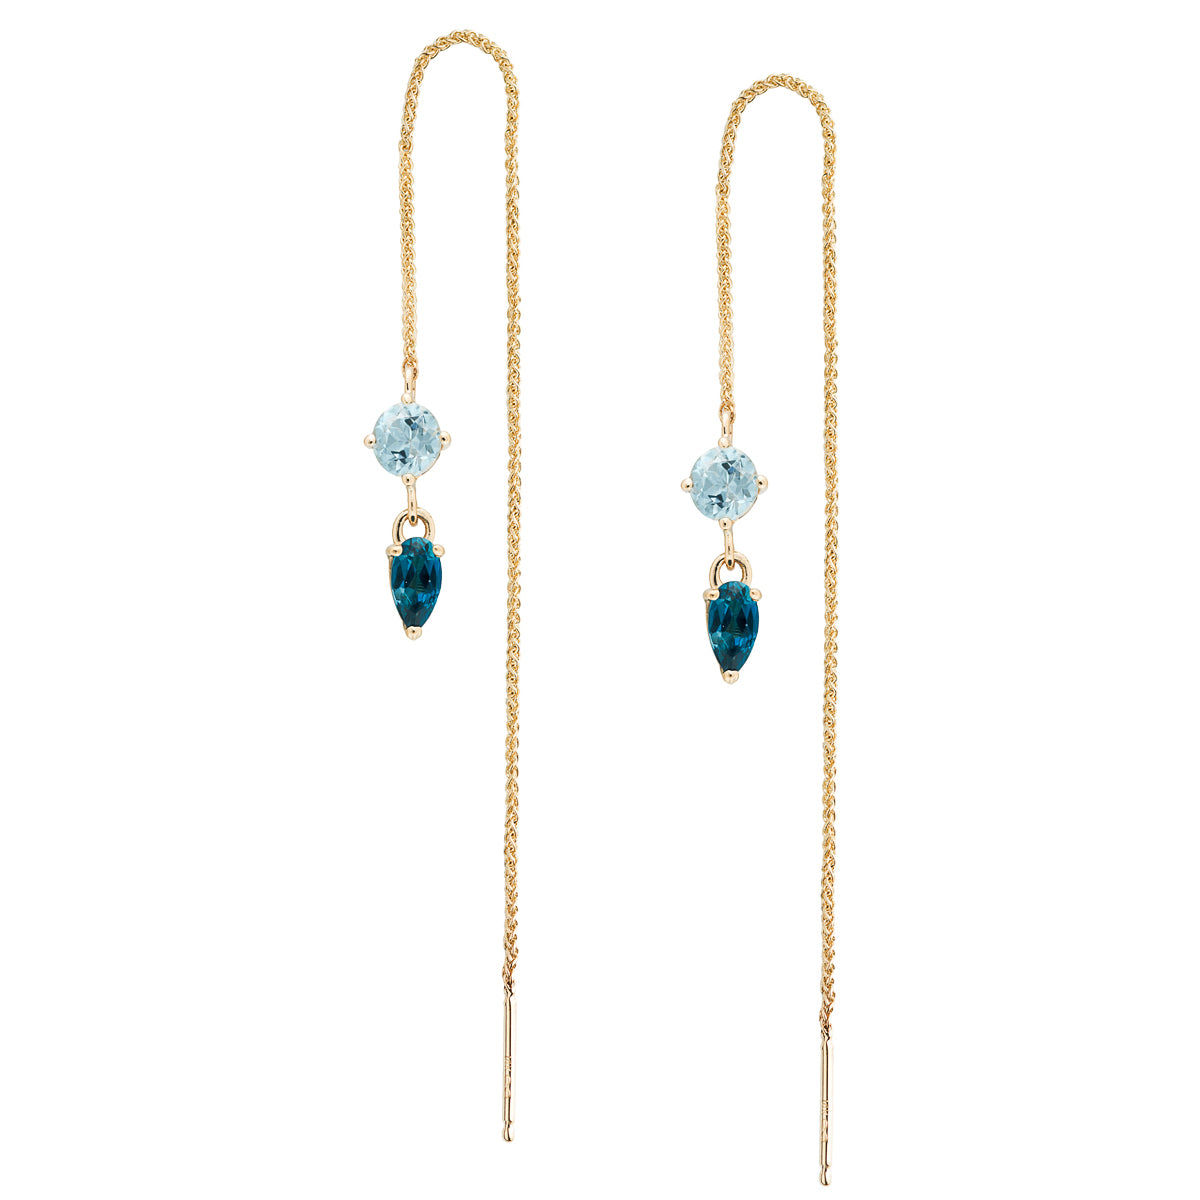 IRINI Gem Drop thread earring in 14k gold with a brilliant light blue topaz and london blue topaz gemstone, simple, delicate perfection